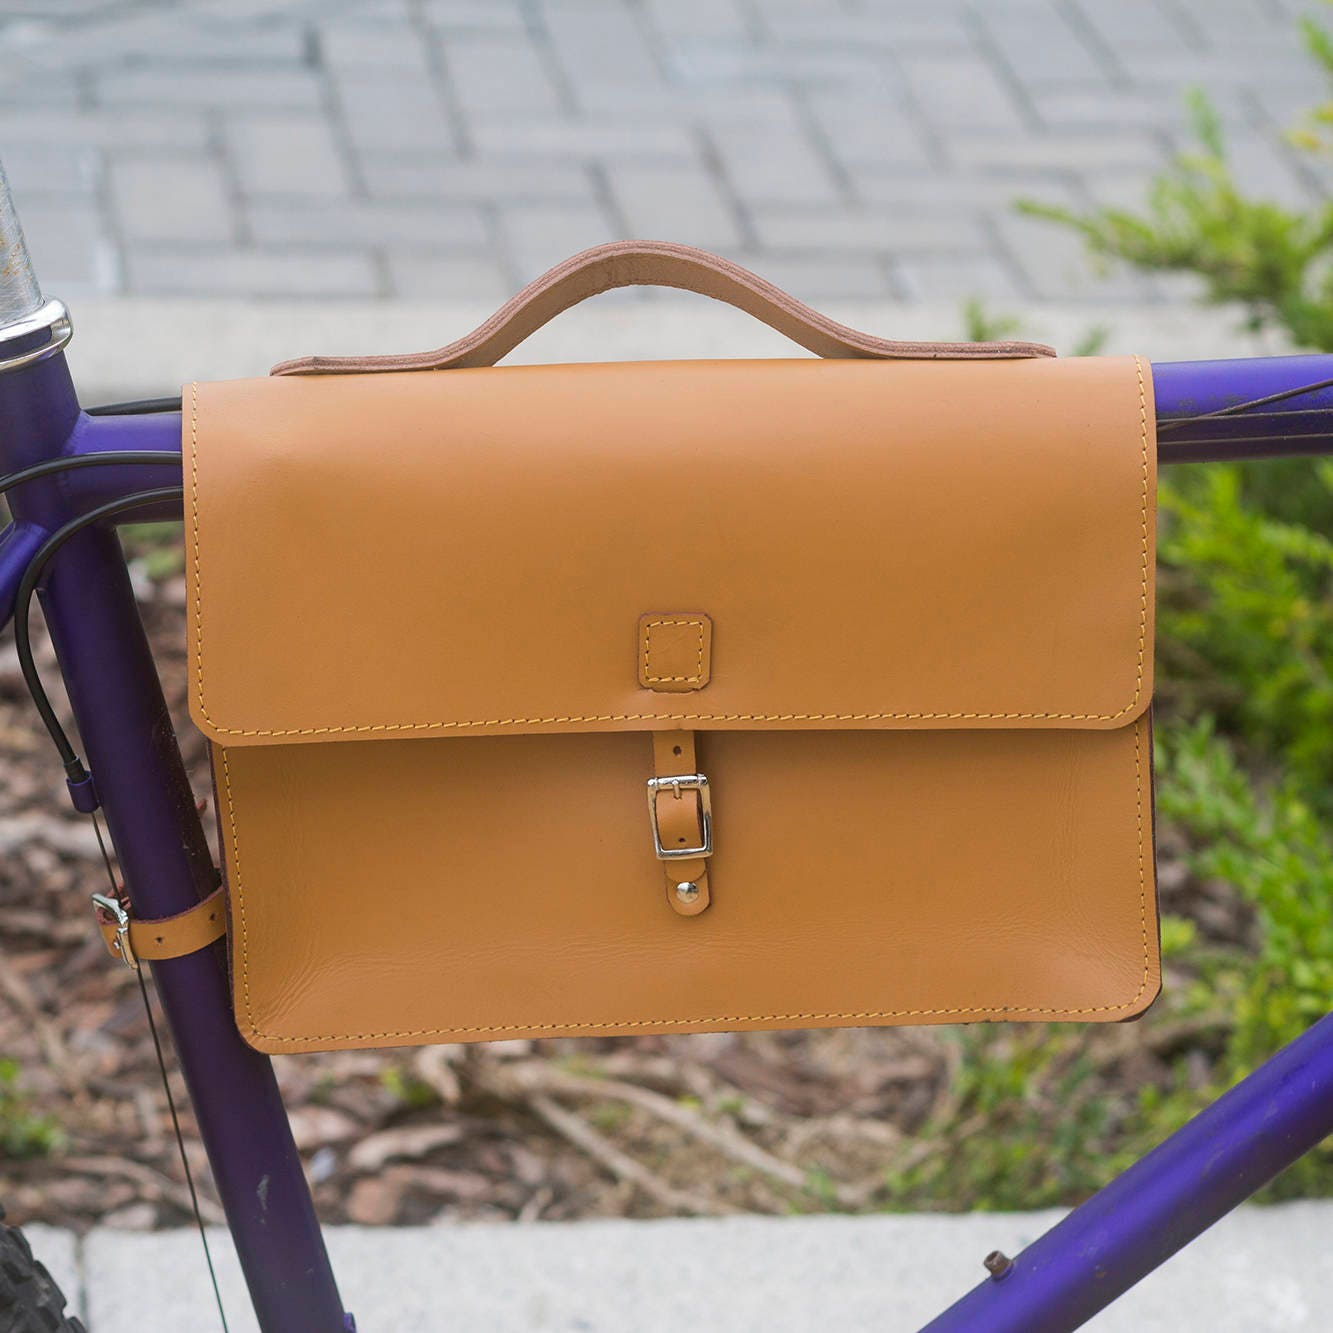 Bicycle Frame Satchel Bag Handcrafted Natural Leather HONEY 11.8x8.1x2.2